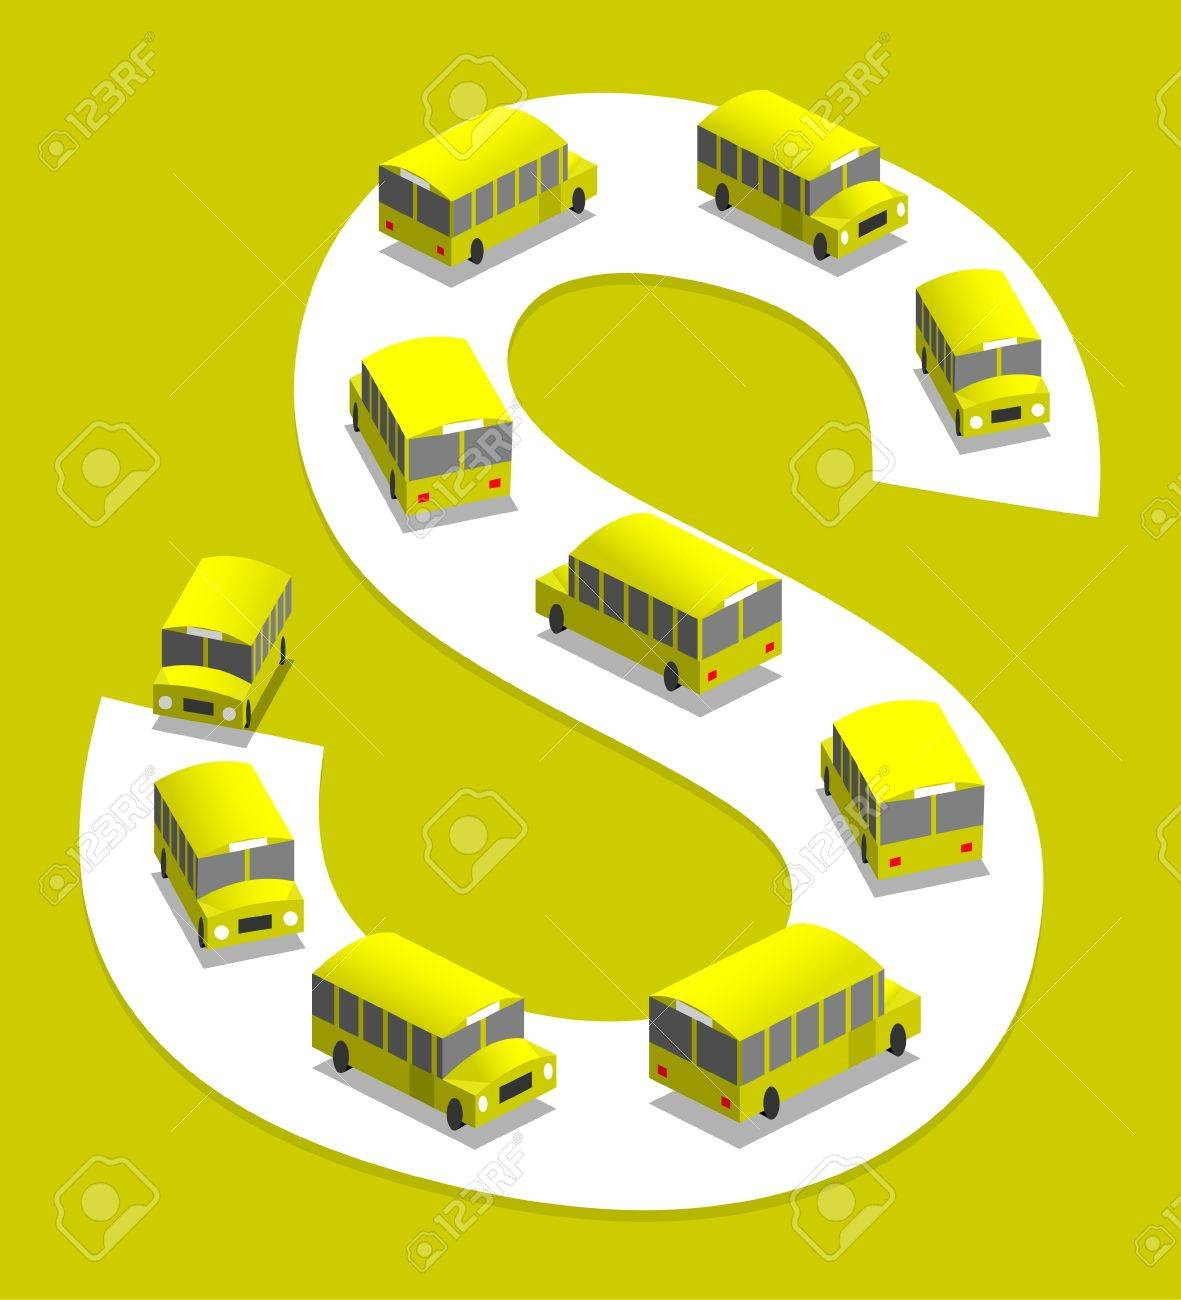 School bus on the road, 3D illustration Stock Vector - 17170465